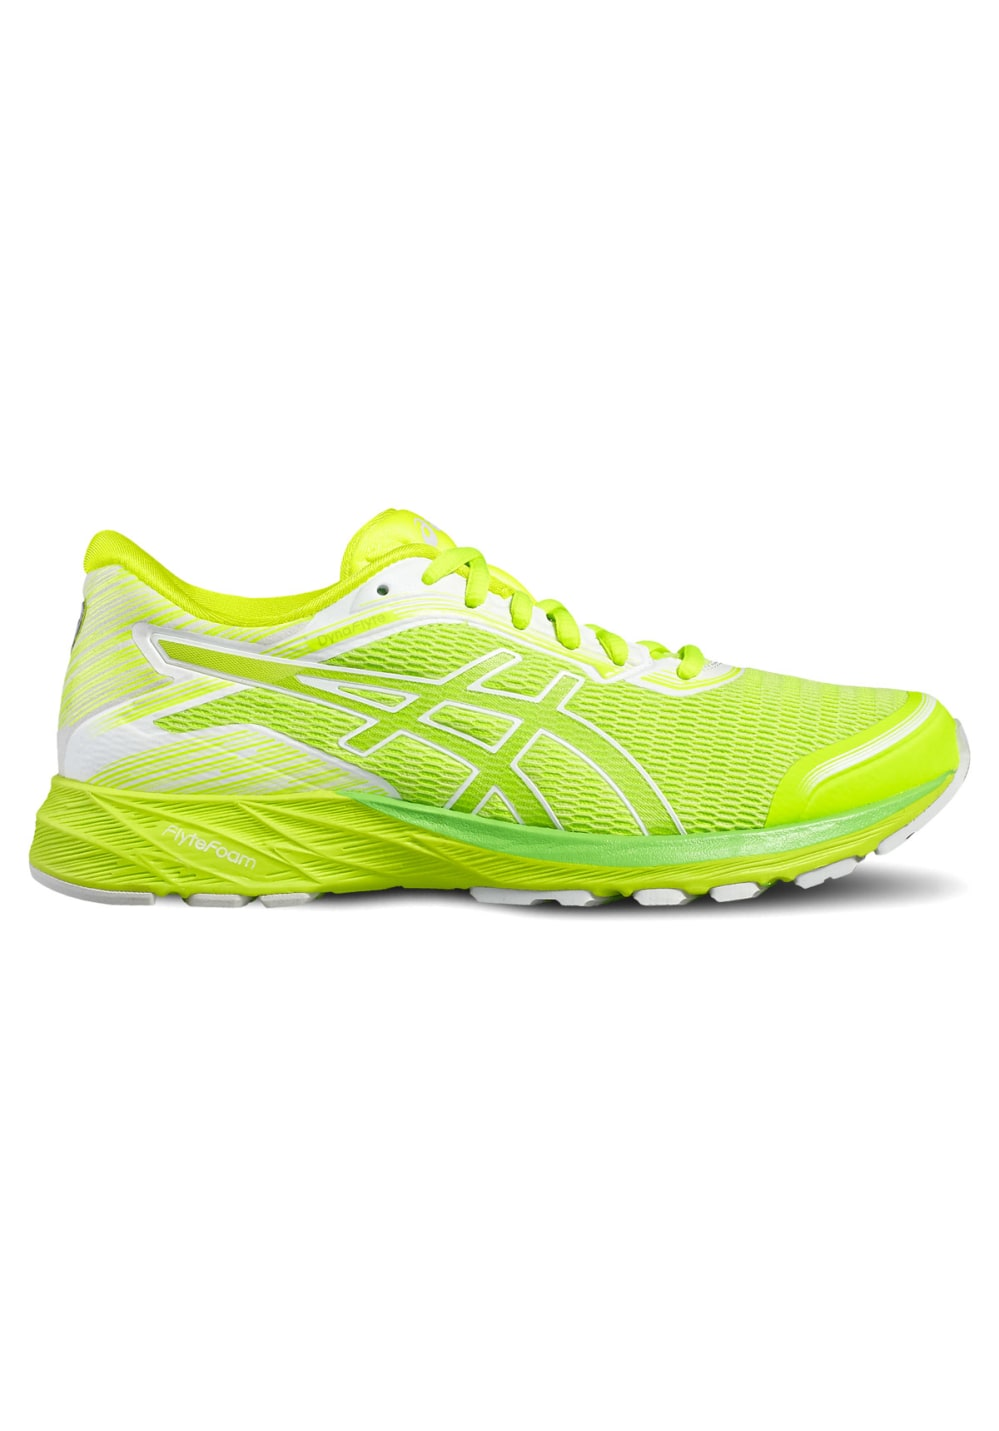 best service b8e7b 973f3 ASICS DynaFlyte - Running shoes for Women - Yellow